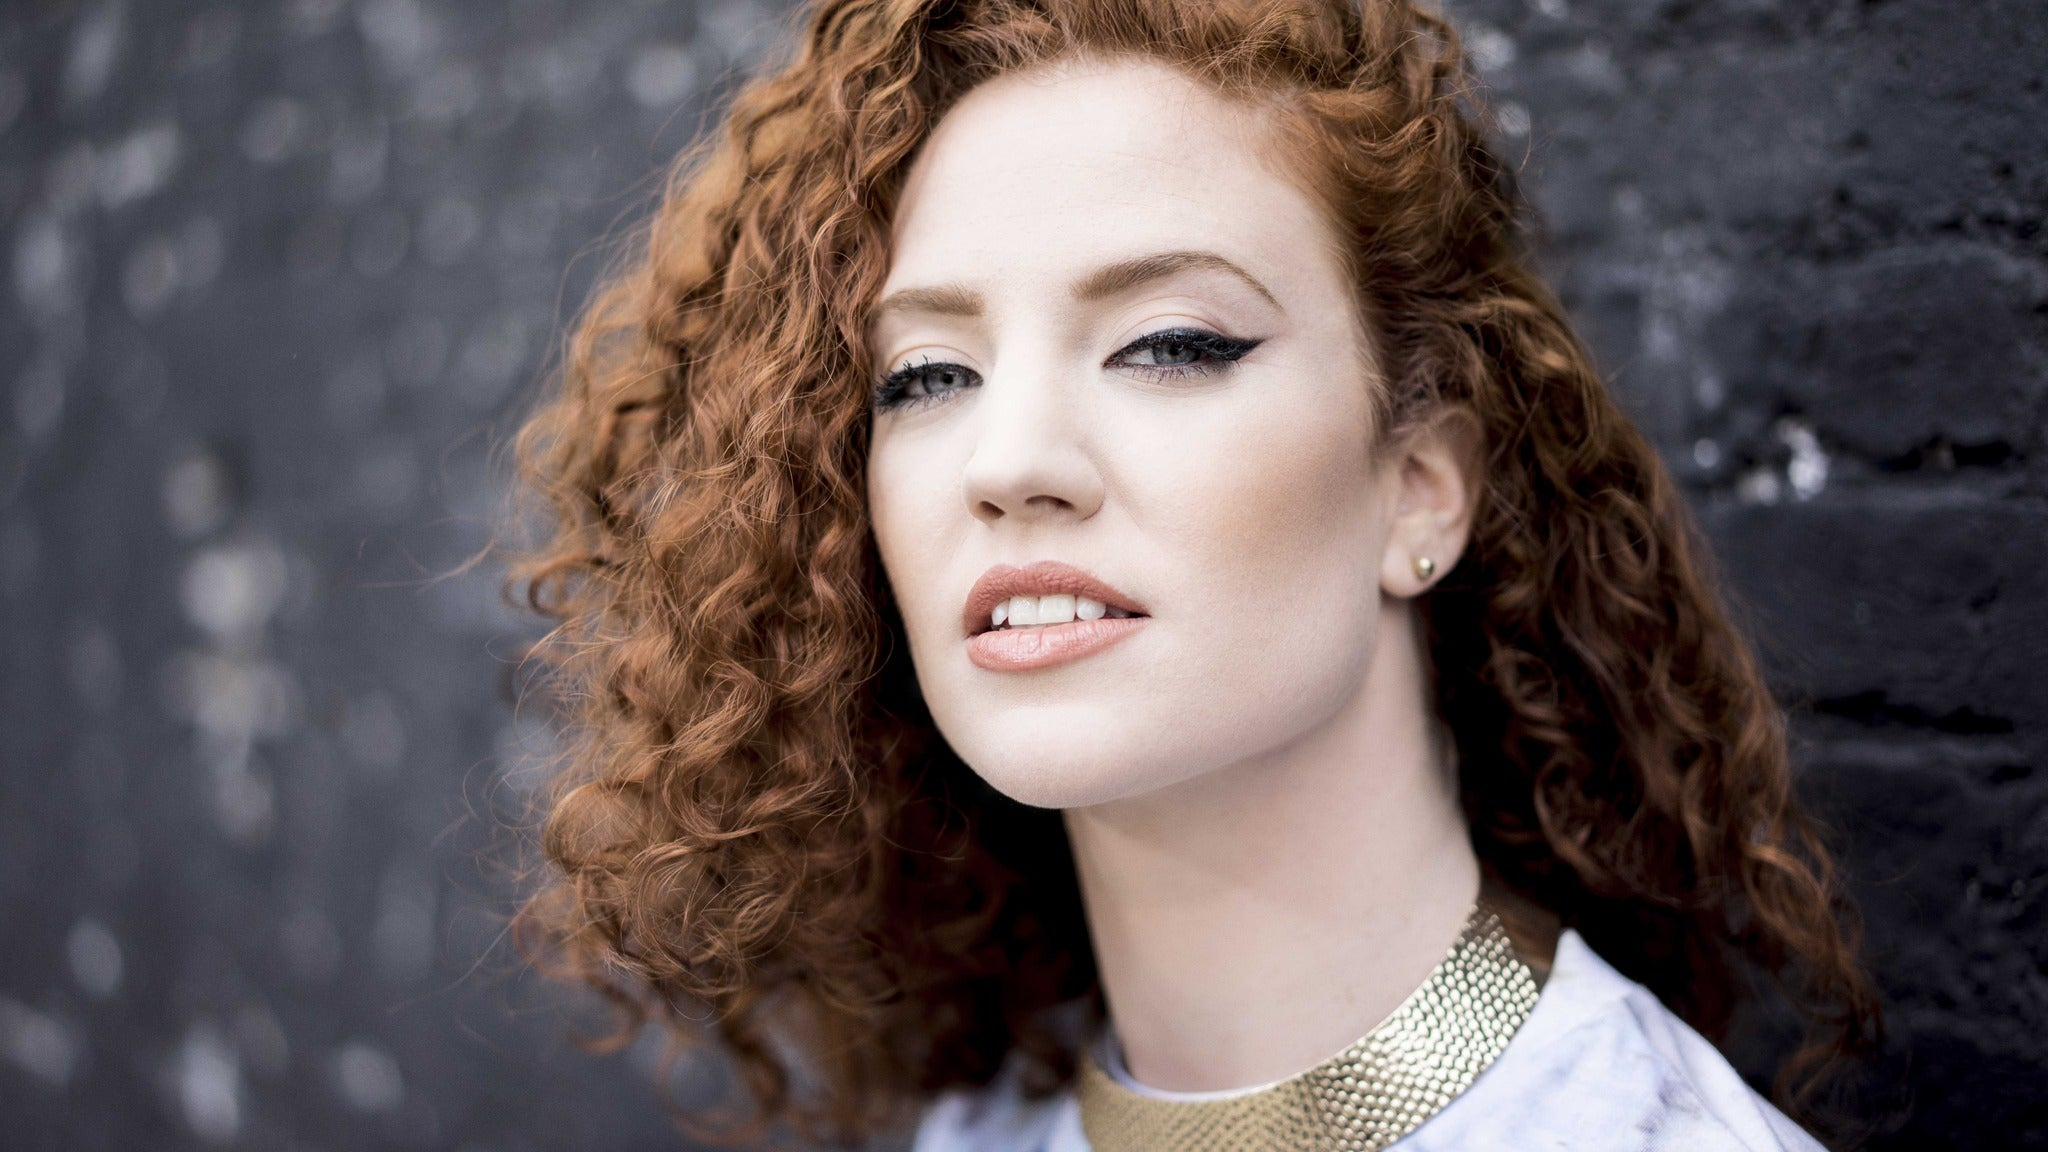 Jess Glynne at First Avenue - Minneapolis, MN 55403